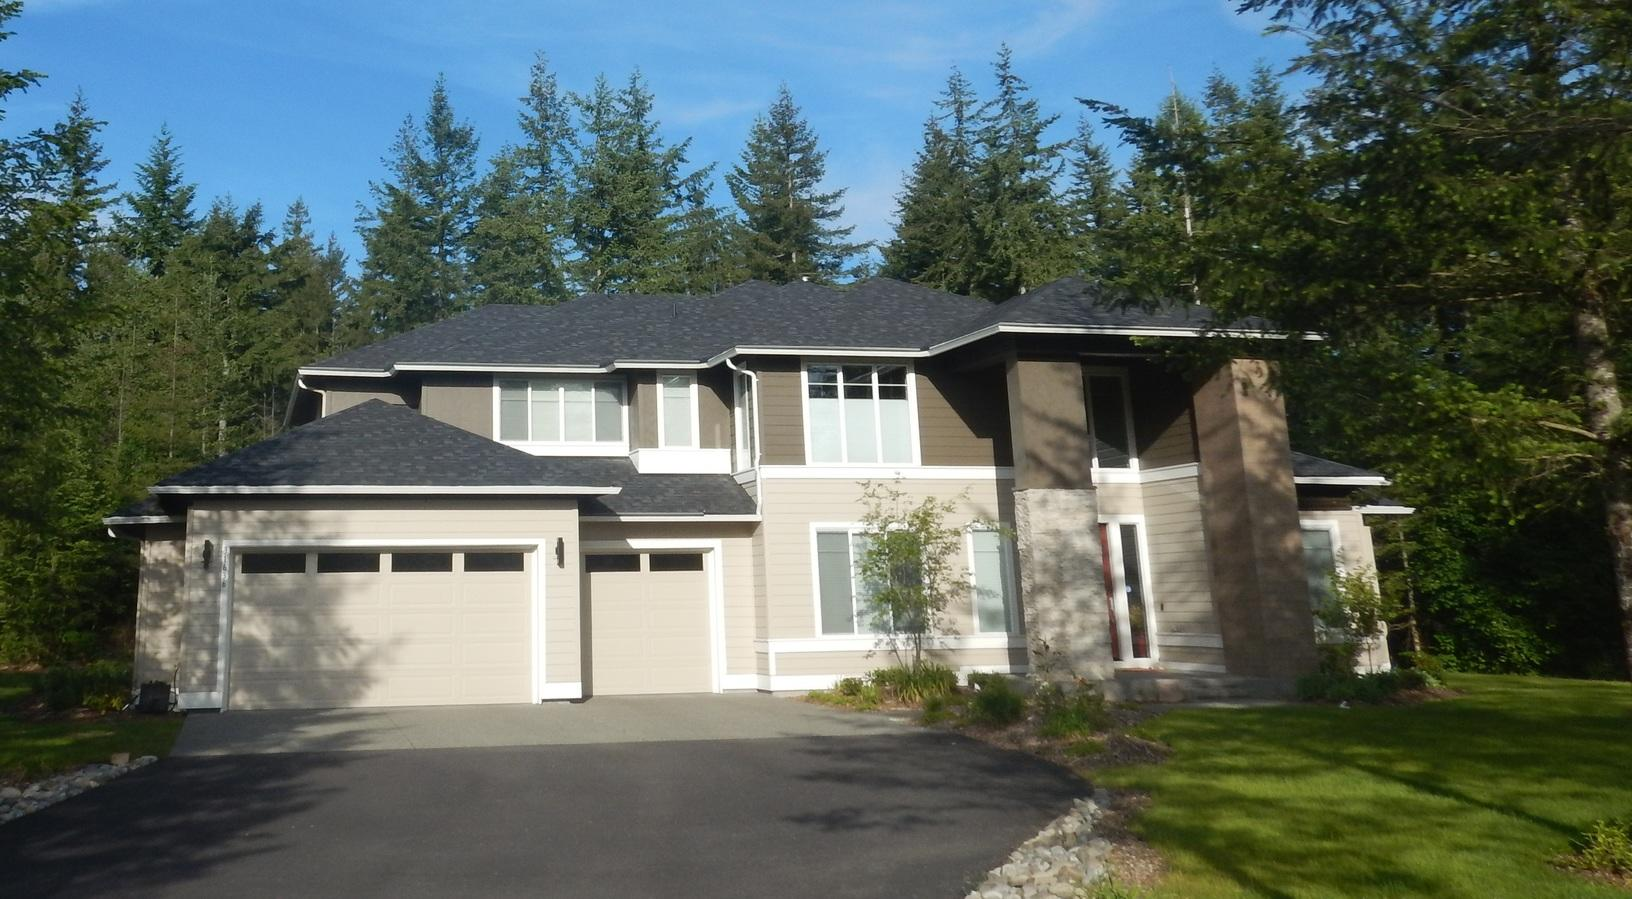 Brand new home needed Leafless Gutters in Ravensdale